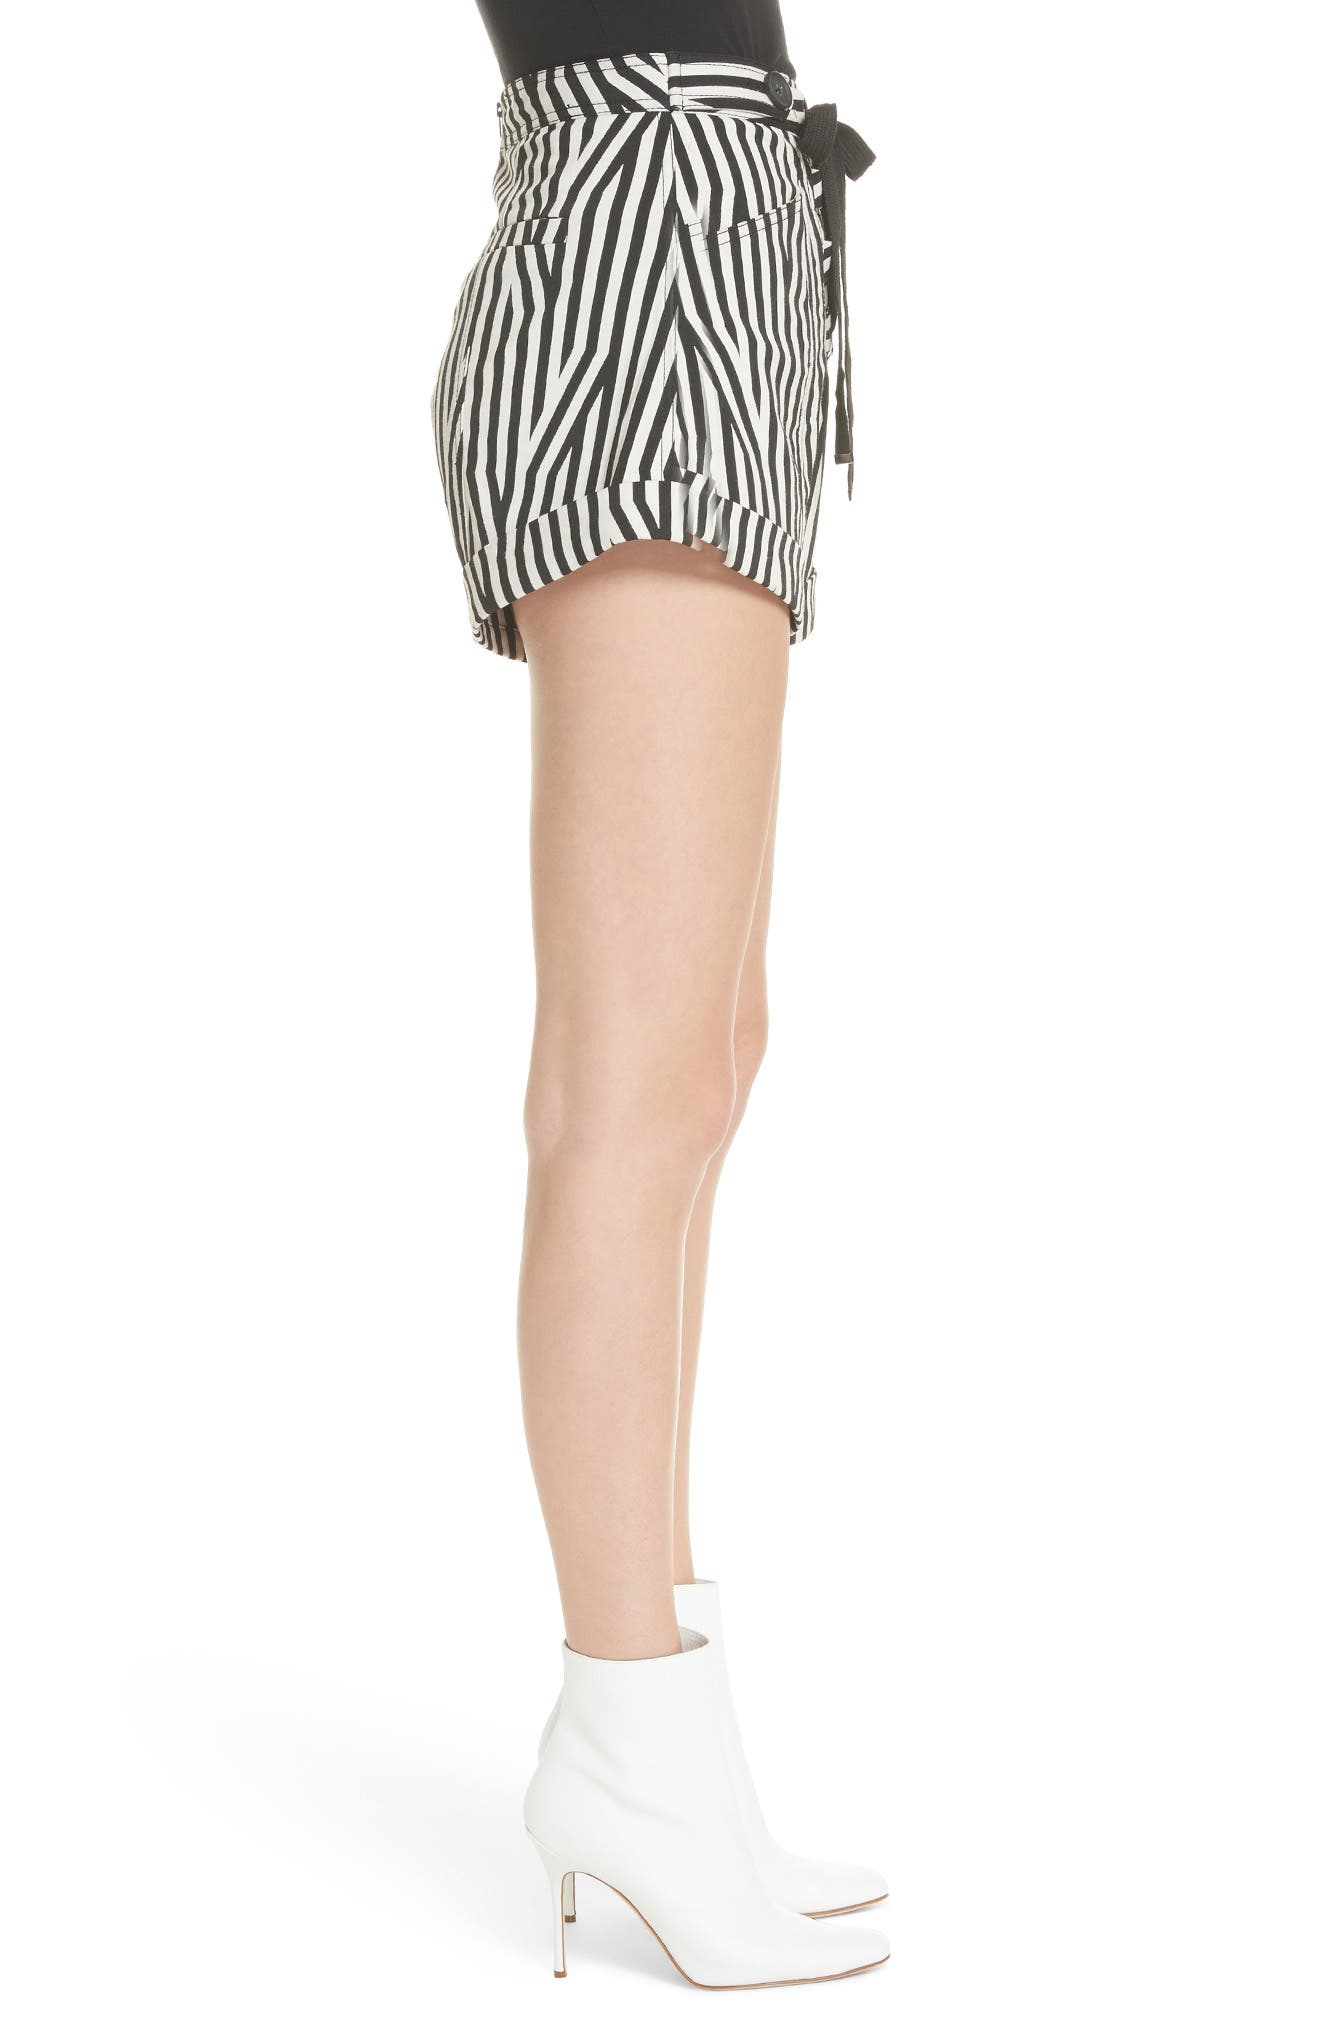 Abstract Stripe Lace-Up Shorts,                             Alternate thumbnail 3, color,                             Black/ White